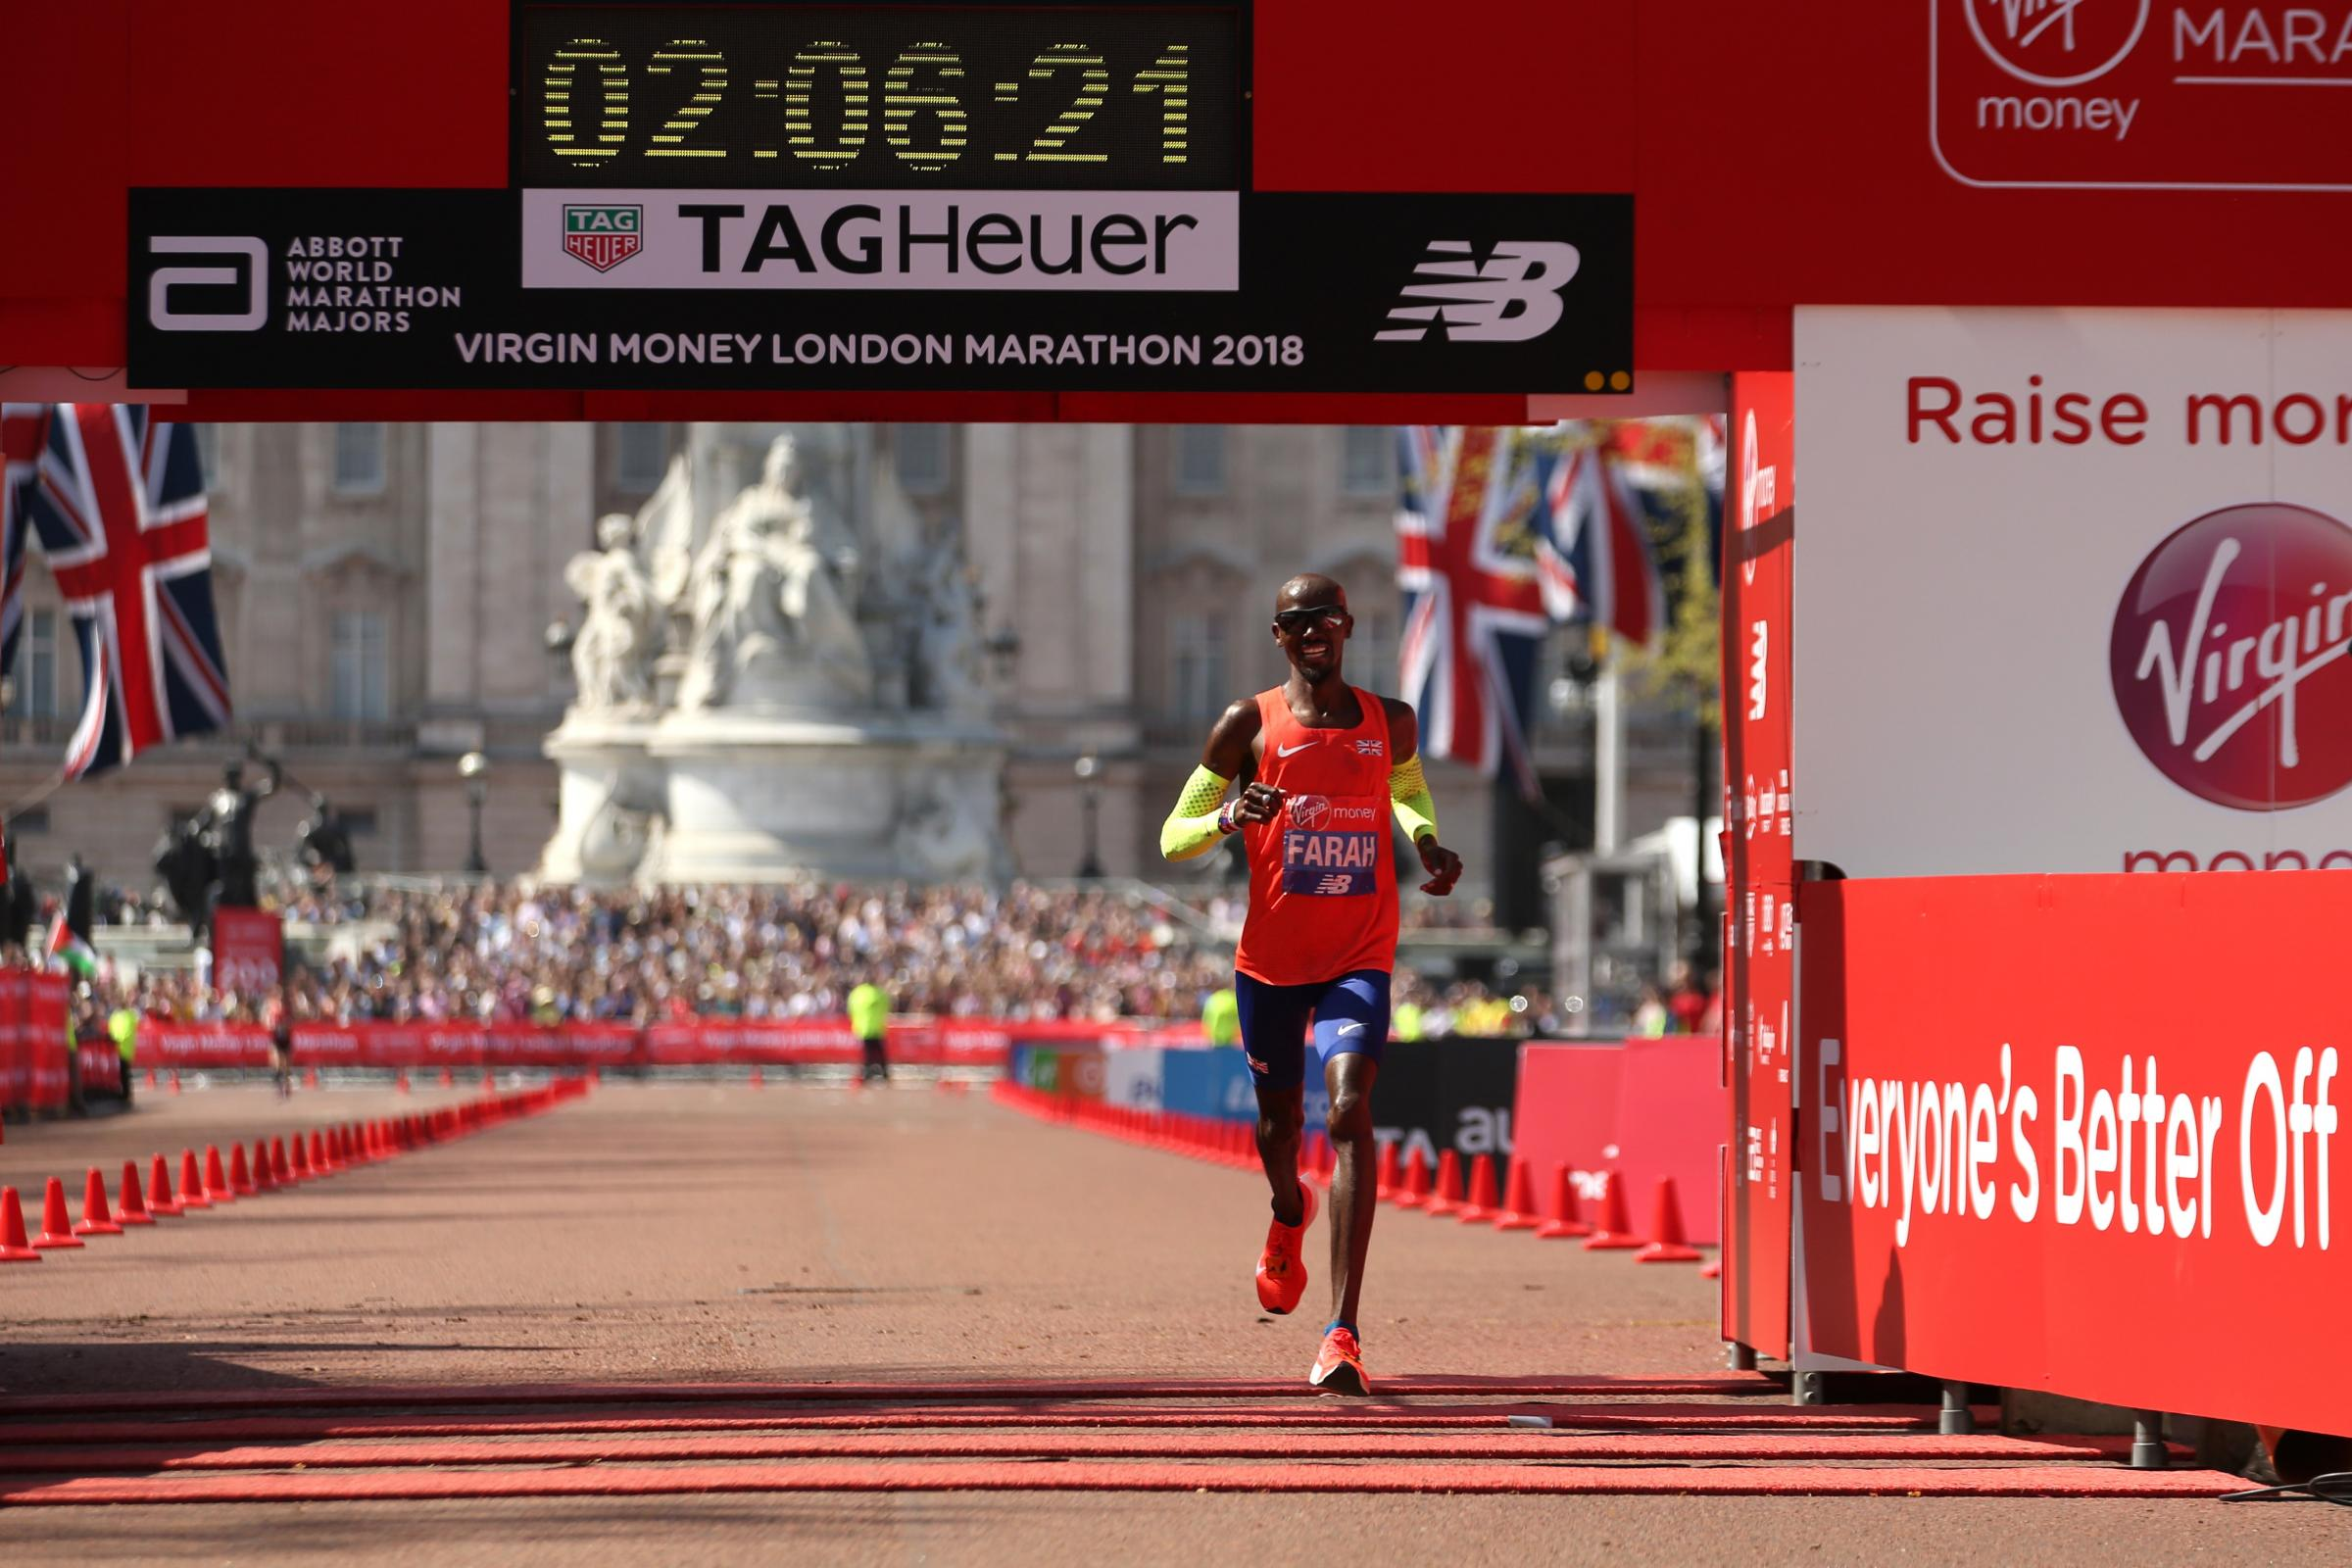 Sir Mo Farah breaks British record with third-place London Marathon finish